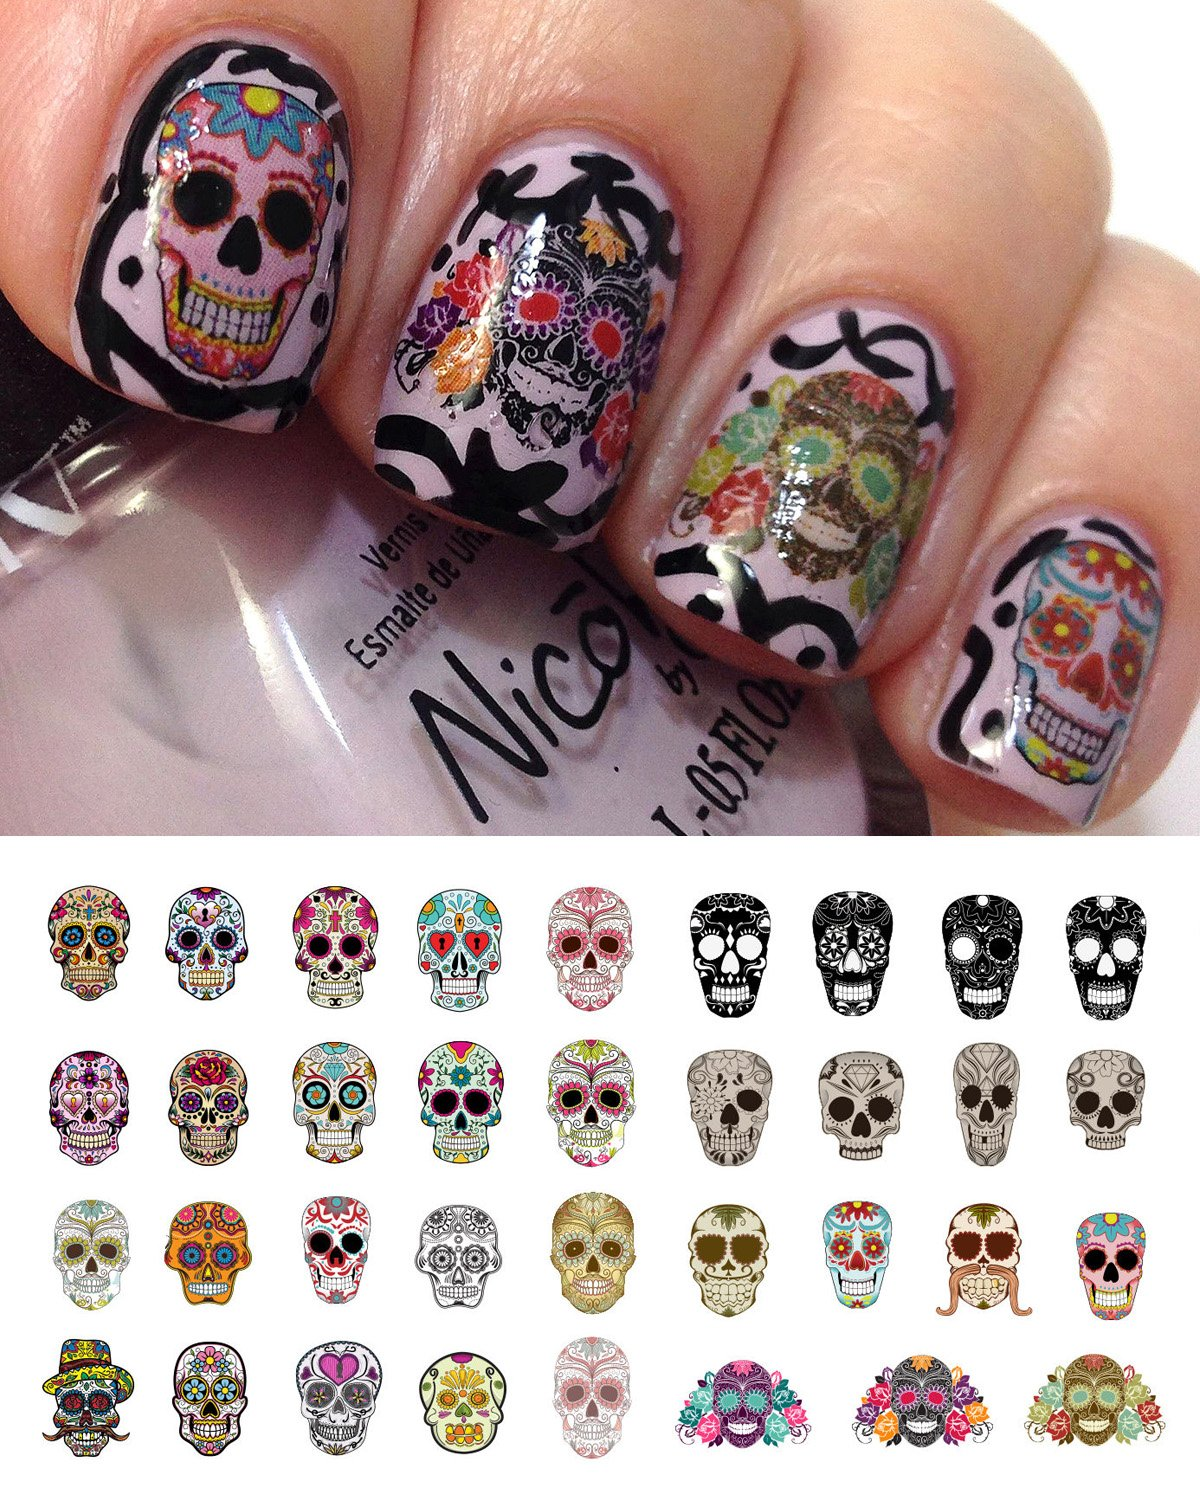 Amazon.com: Sugar Skull Nail Decals Assortment #1 Water Slide Nail Art  Decals- Salon Quality!: Beauty - Amazon.com: Sugar Skull Nail Decals Assortment #1 Water Slide Nail